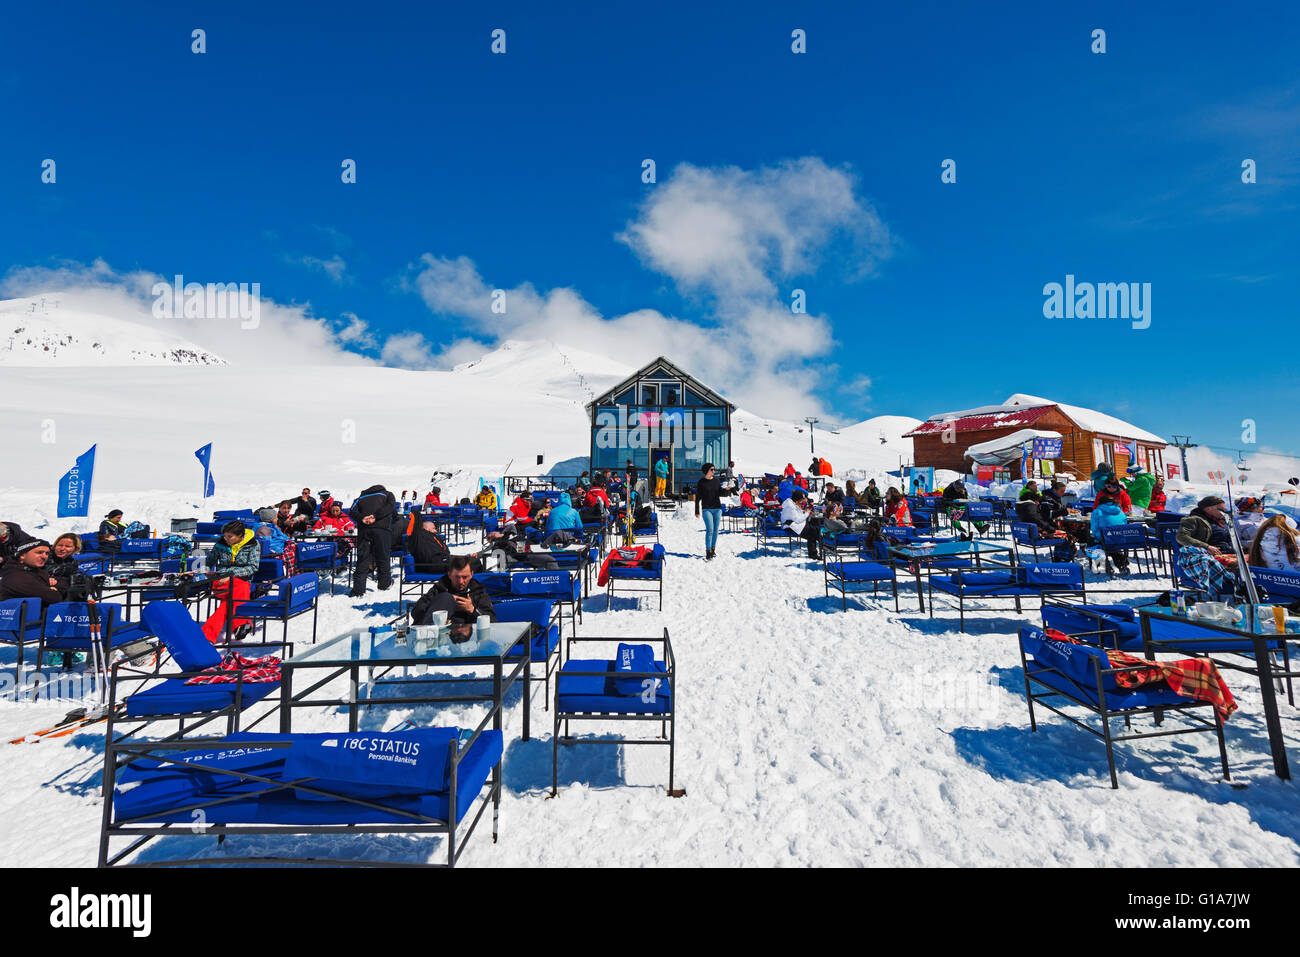 Eurasia, Caucasus region, Georgia, Gudauri ski resort, mountain restaurant - Stock Image